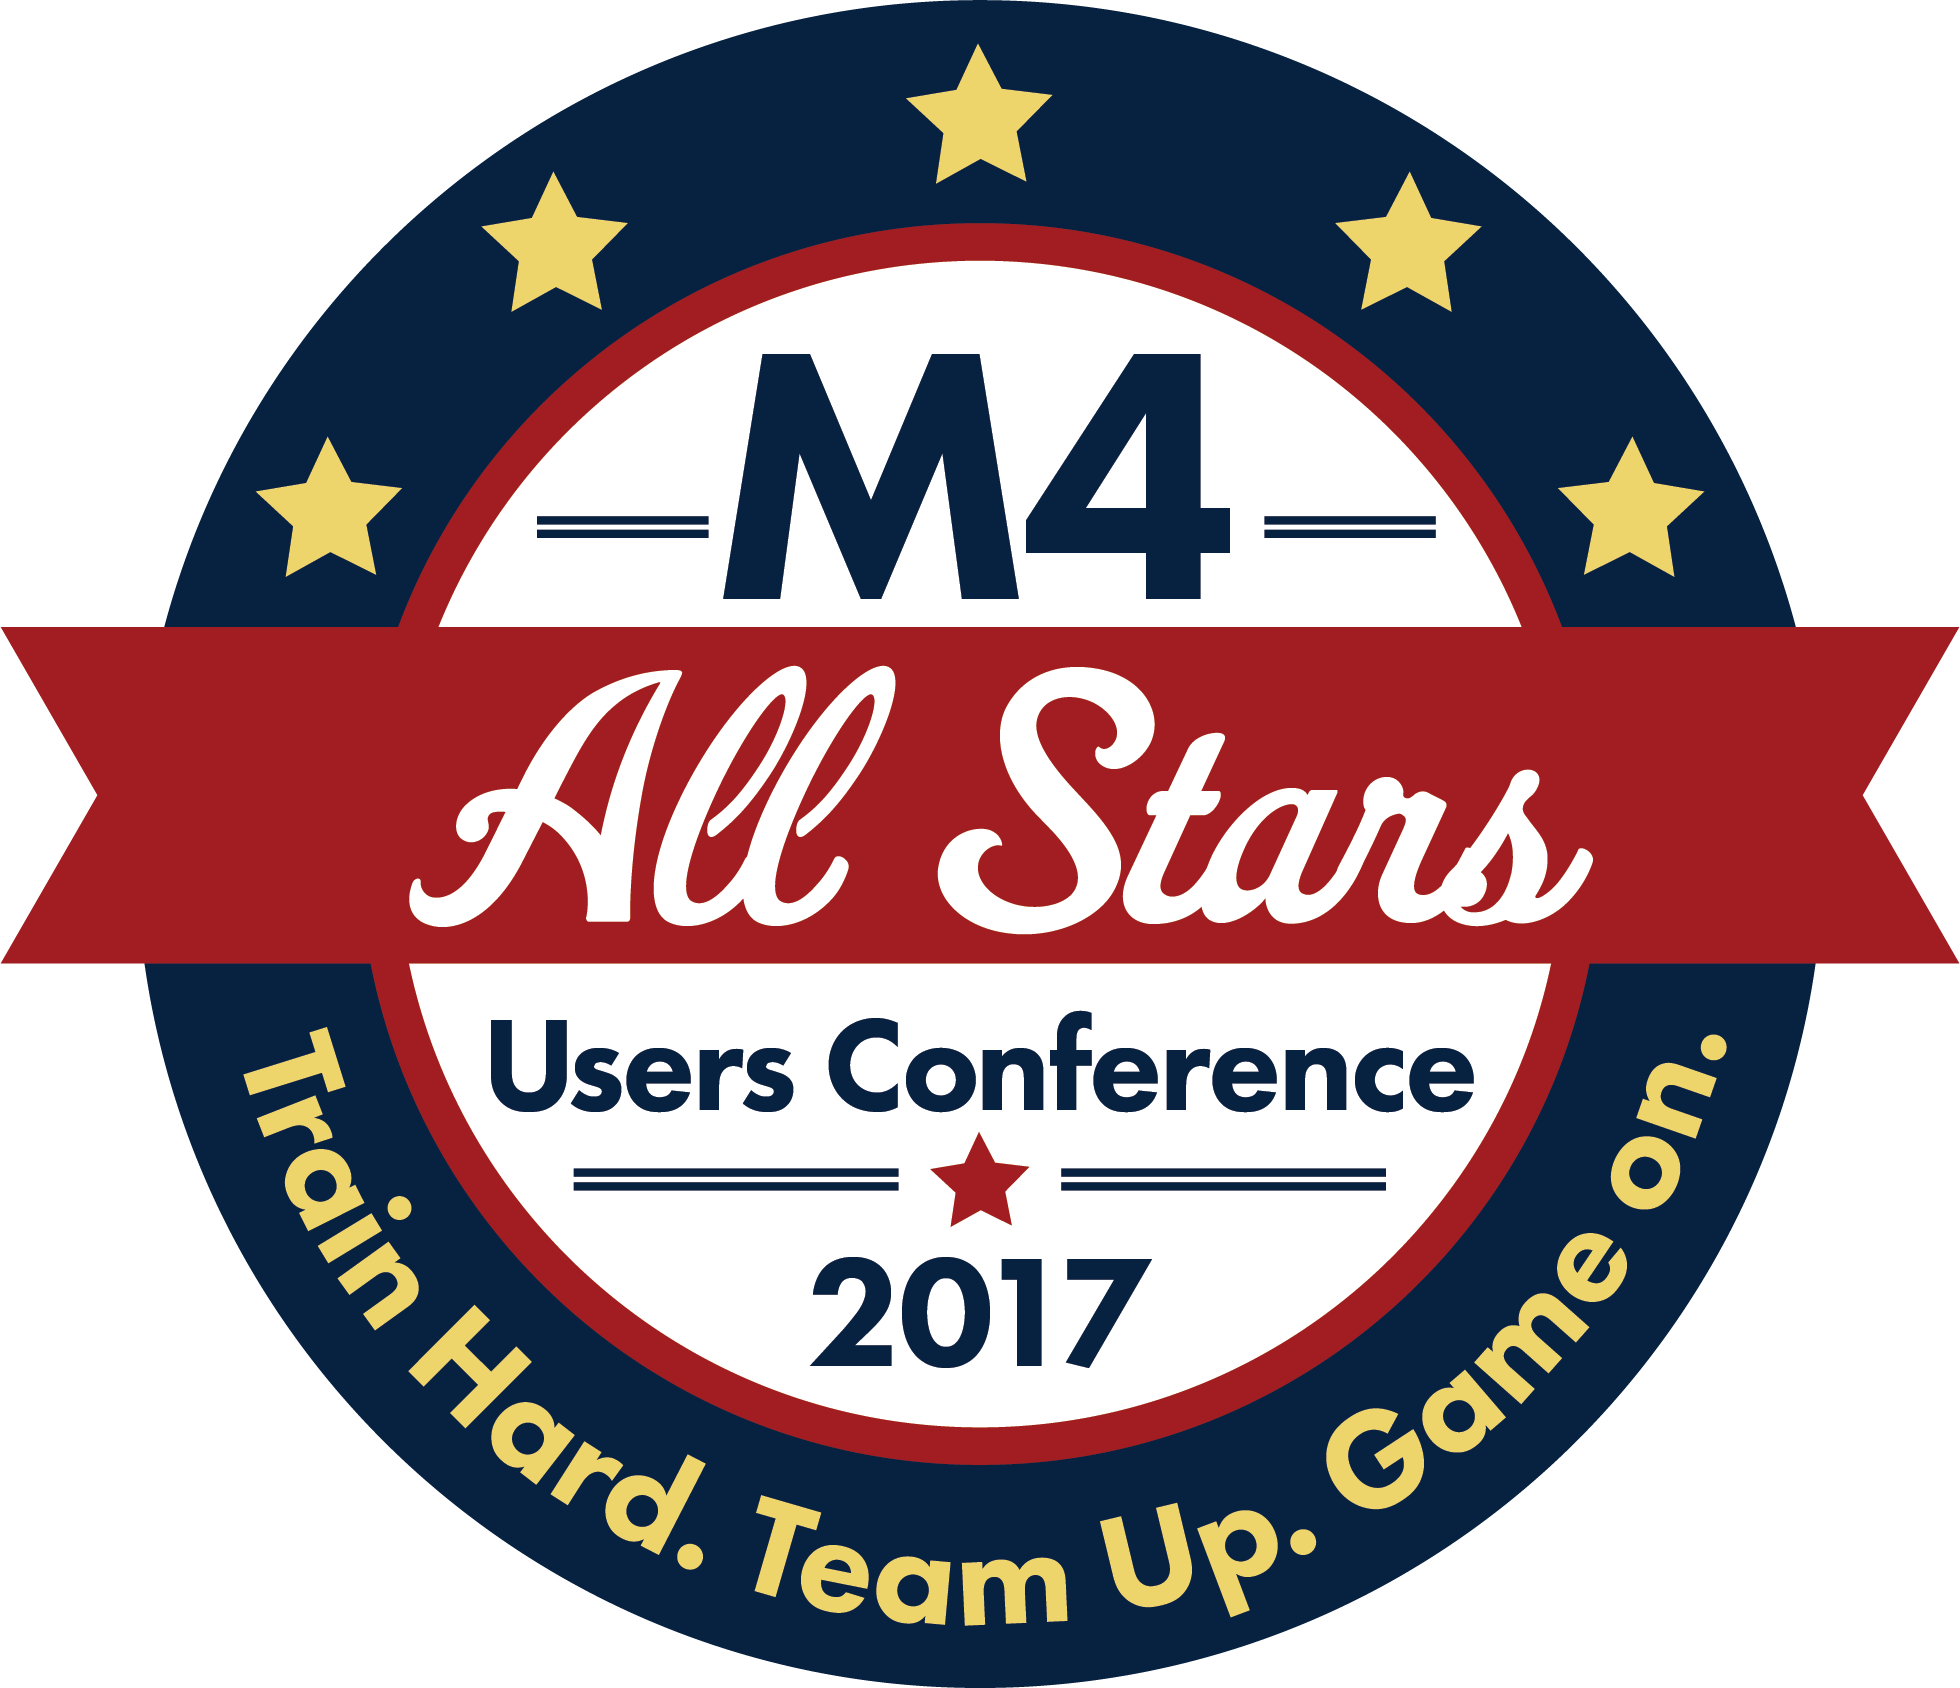 M4 User Conference 2017